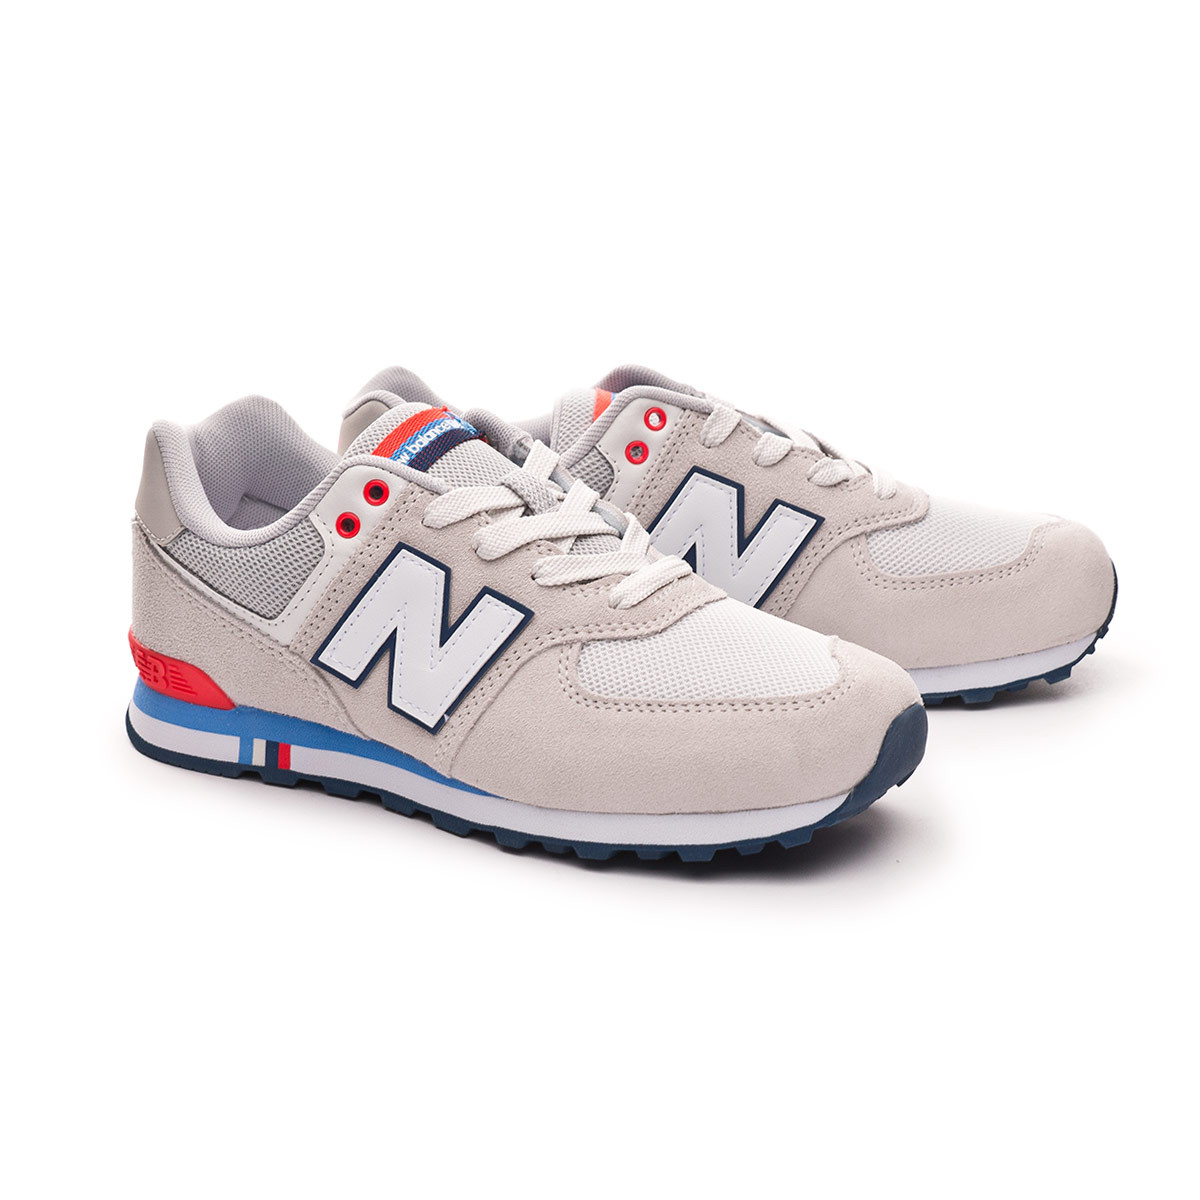 Clasificación Olla de crack dentro de poco  new balance 574 trainers Sale,up to 33% Discounts